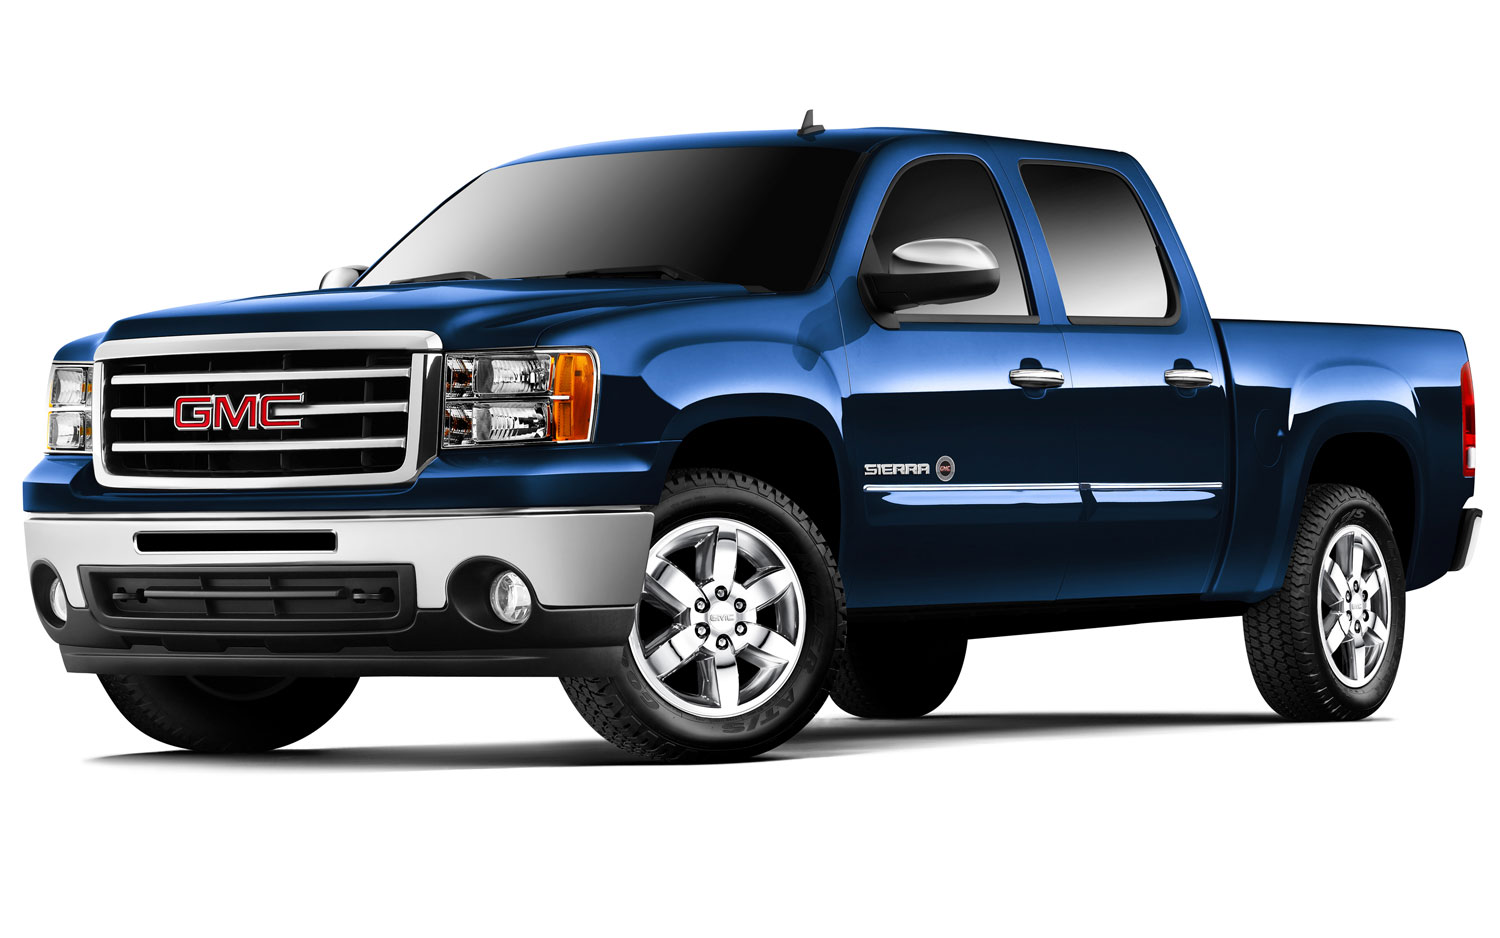 of the new 2013 GMC Sierra has truck lovers chomping at the bit